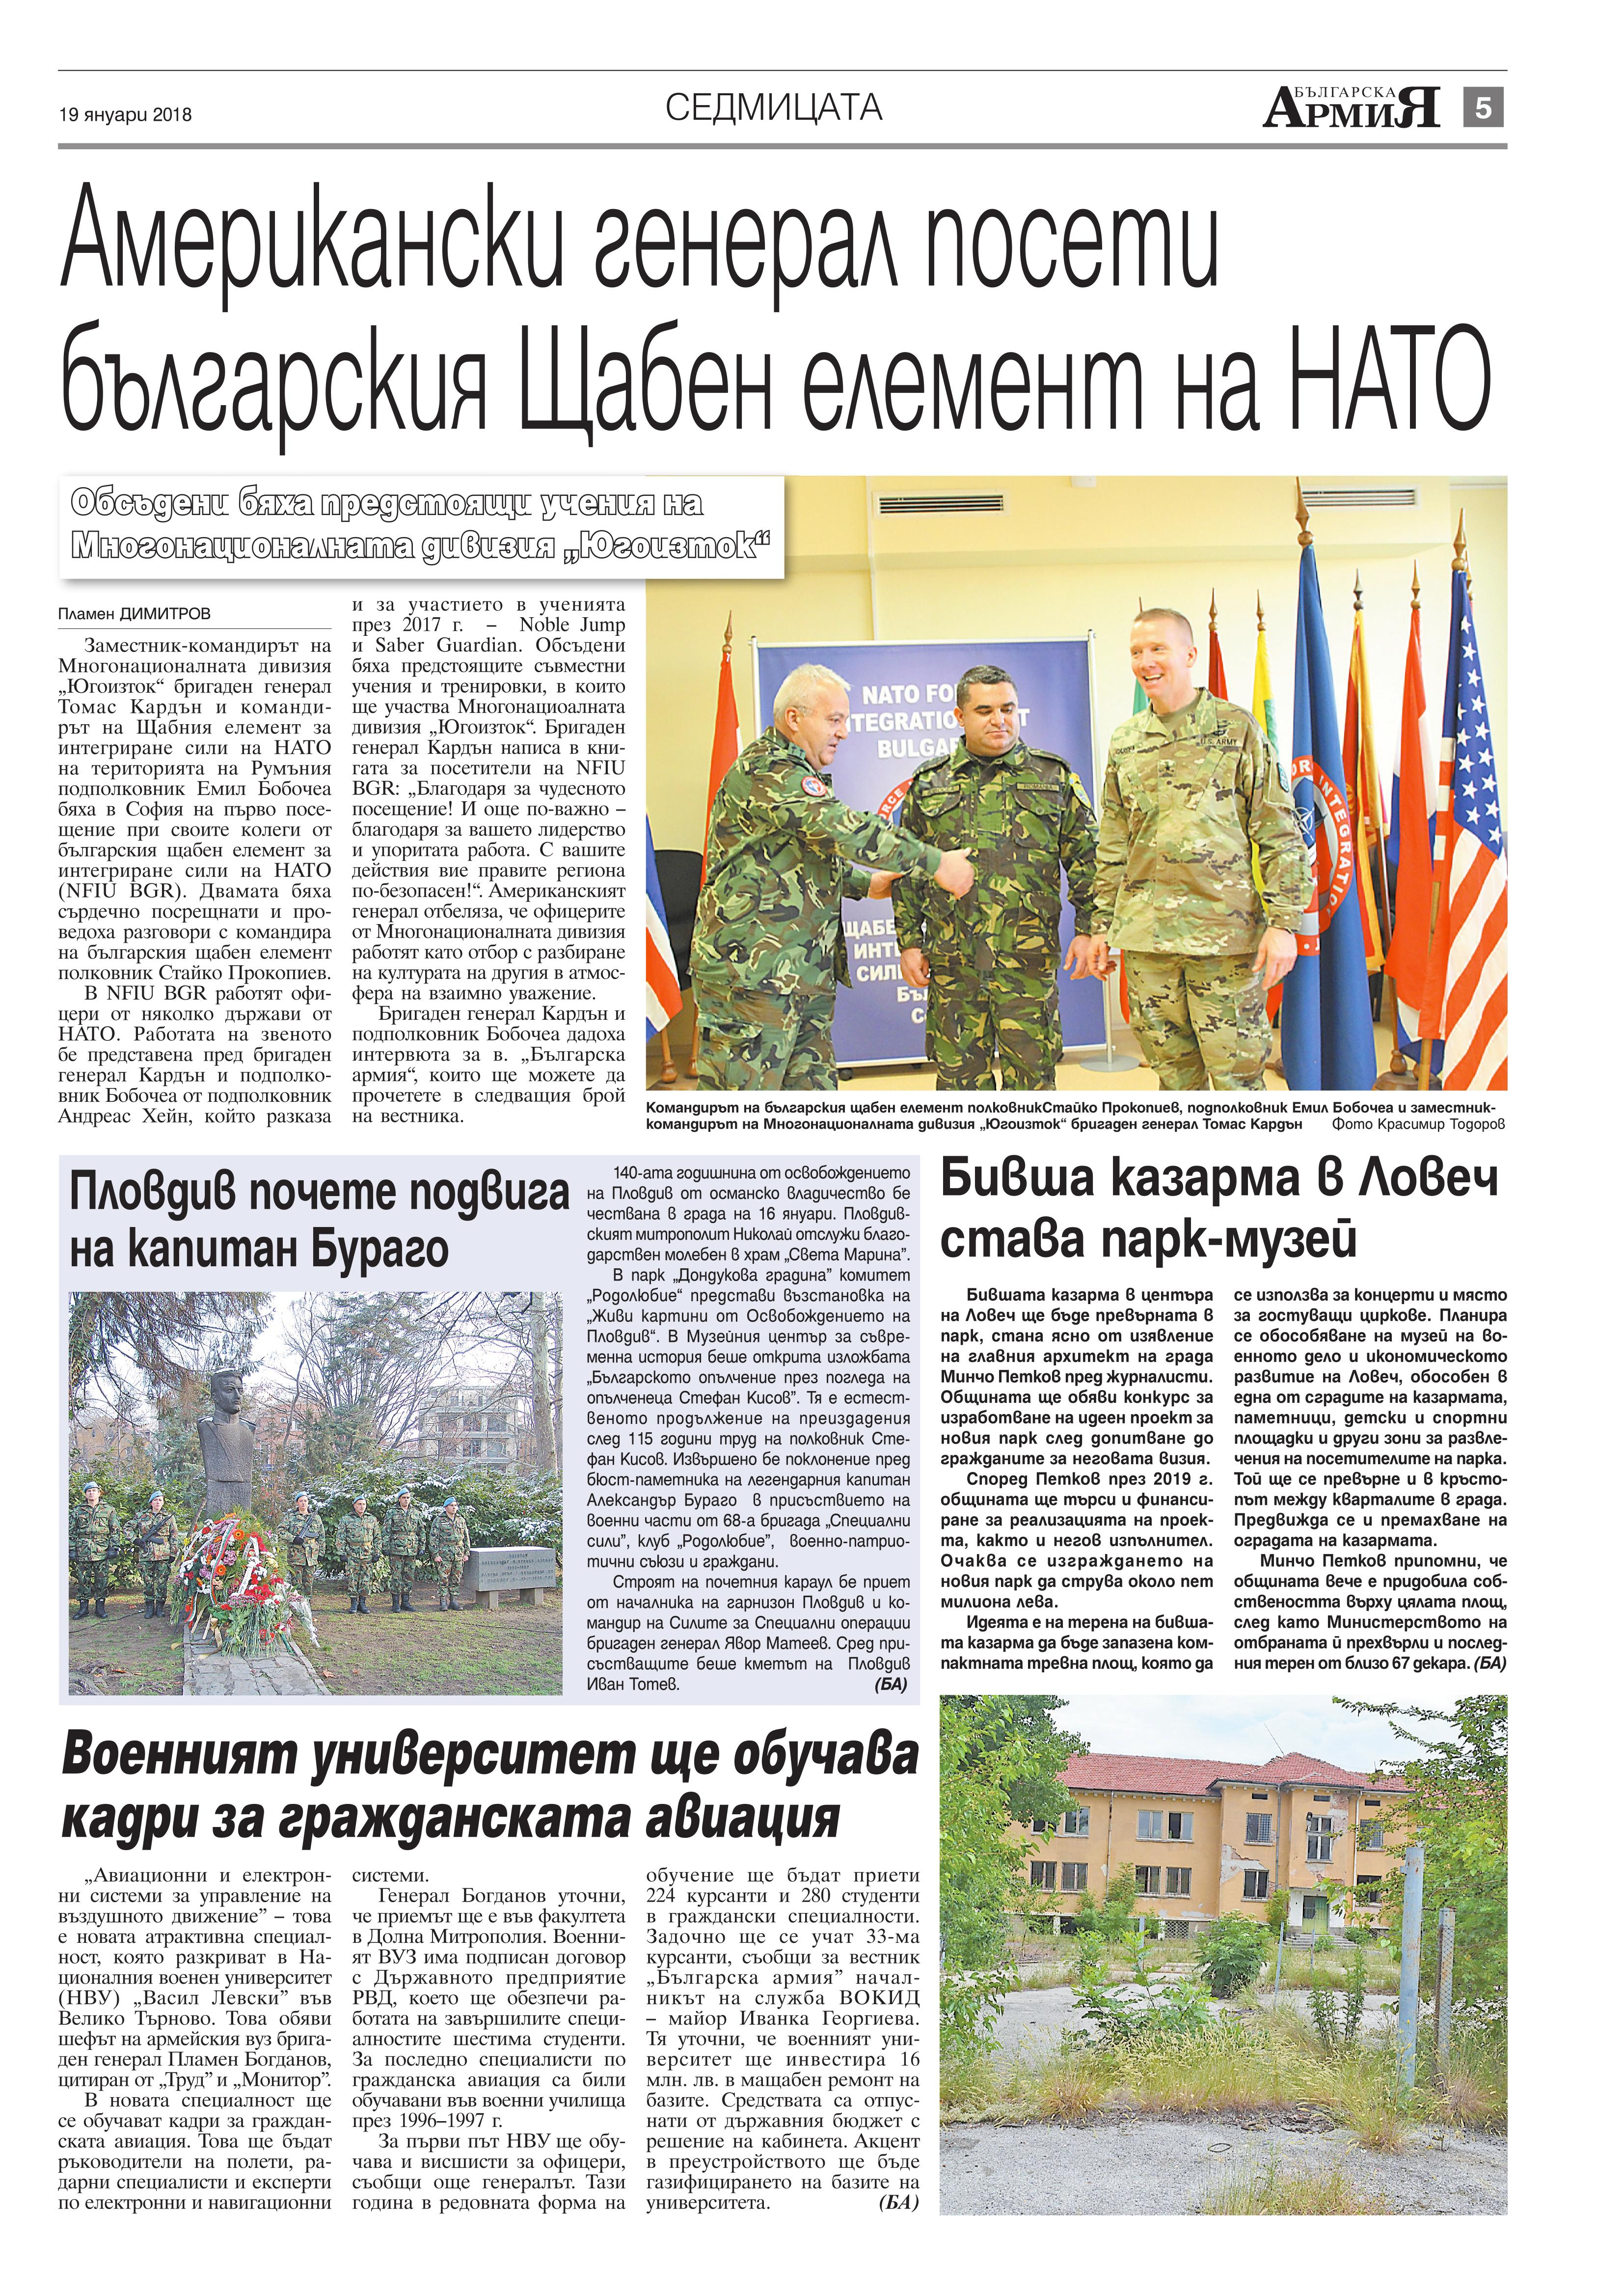 http://armymedia.bg/wp-content/uploads/2015/06/05.page1_-35.jpg